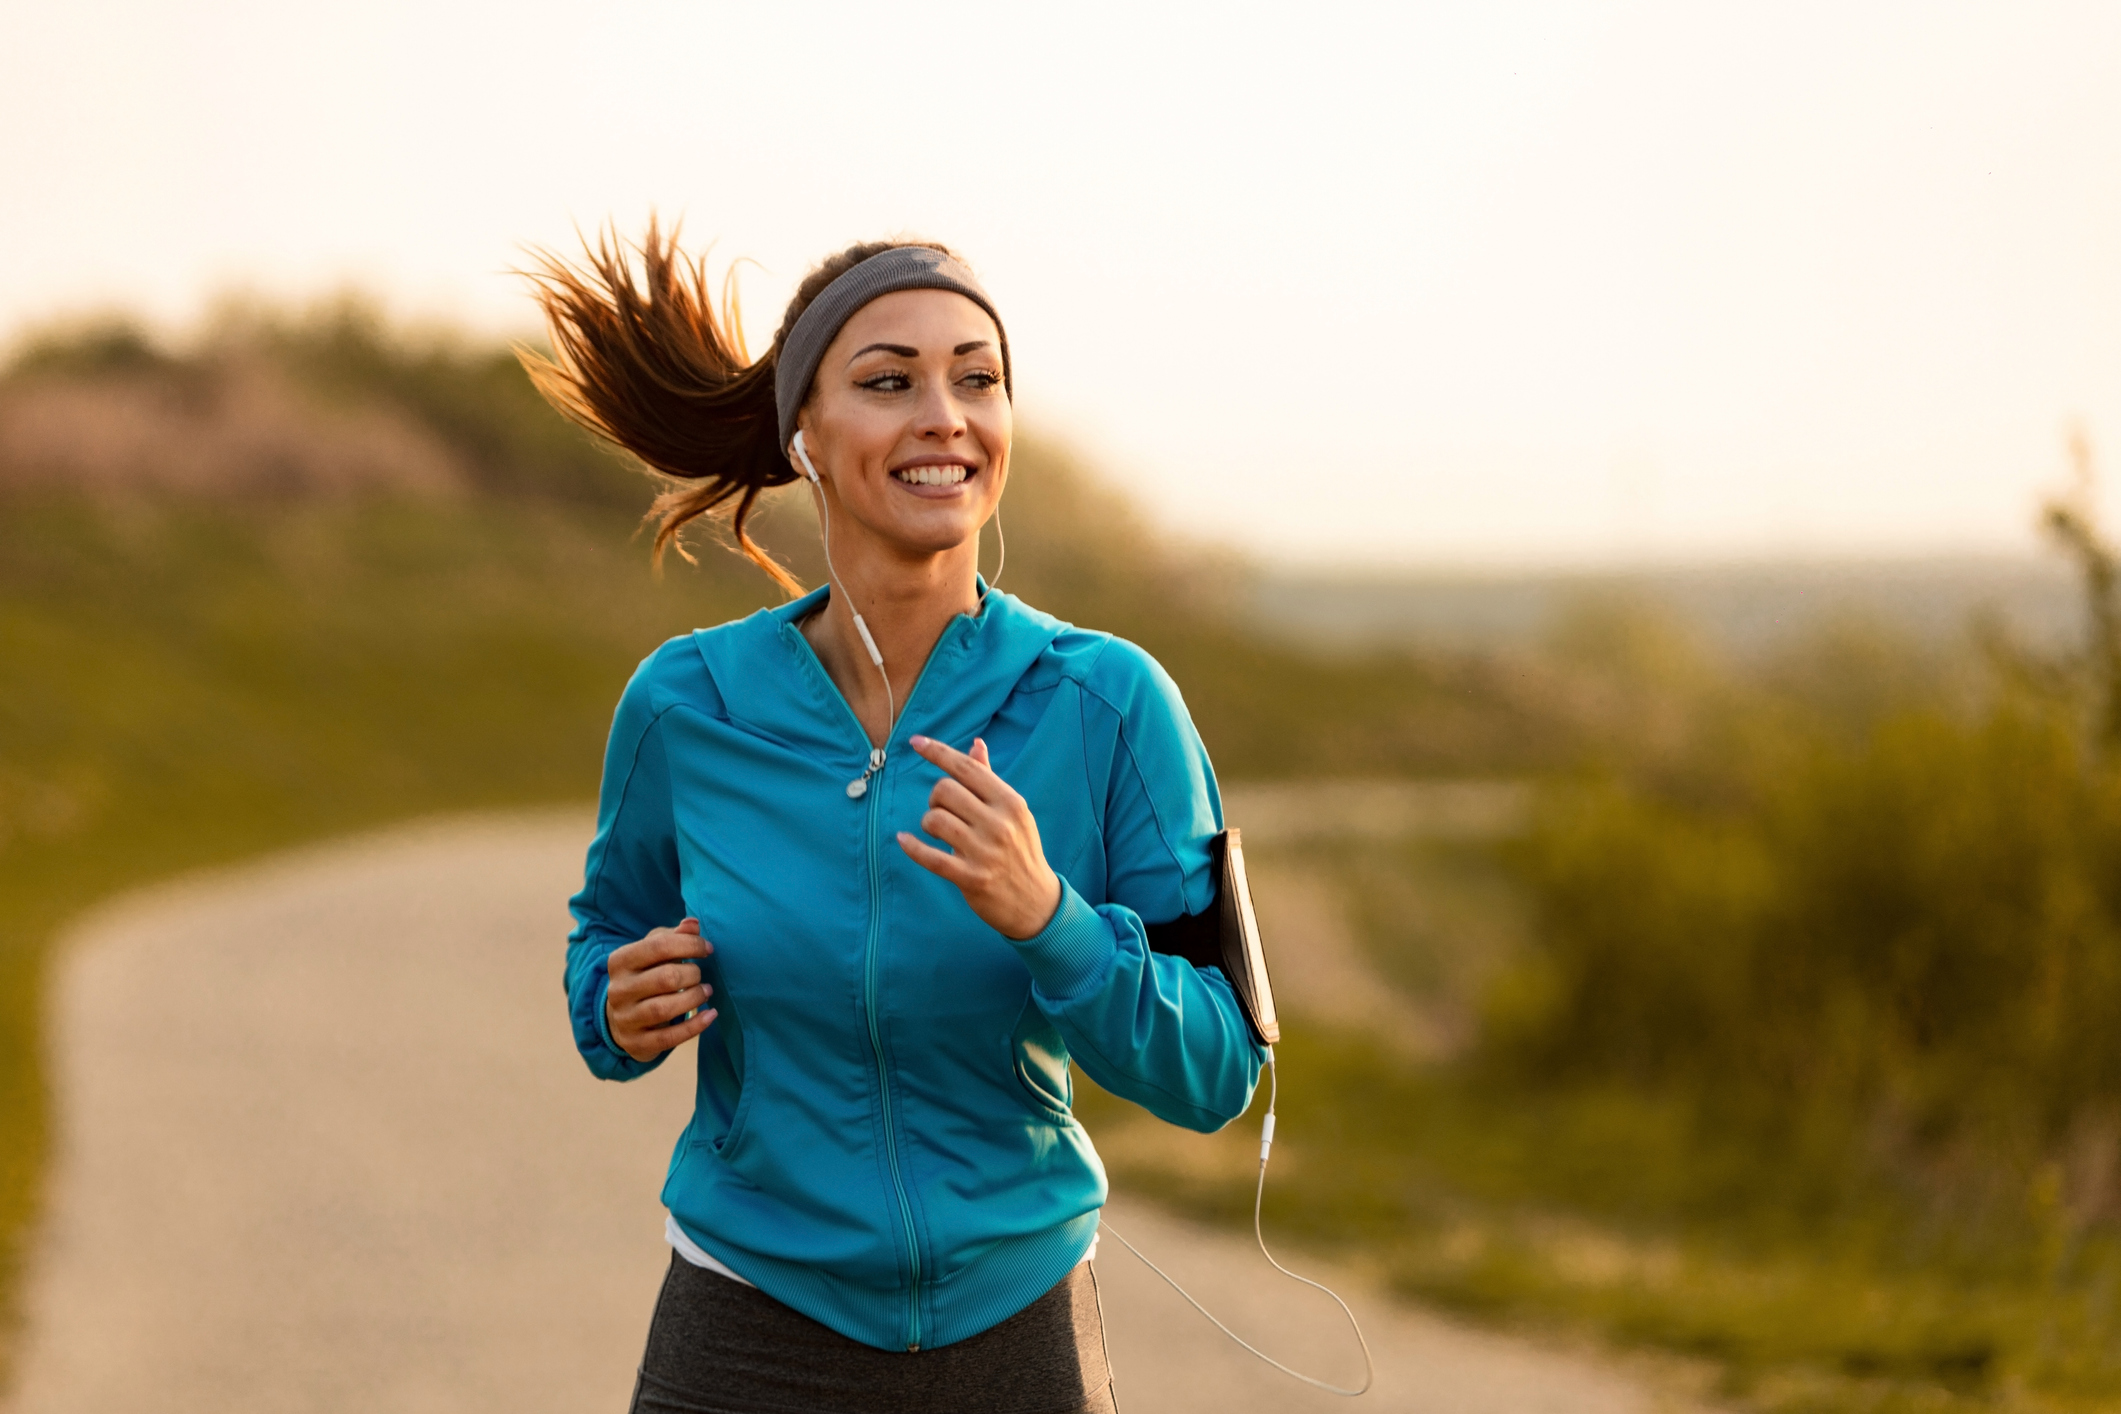 A balanced diet and regular-exercise will improve your health for the future